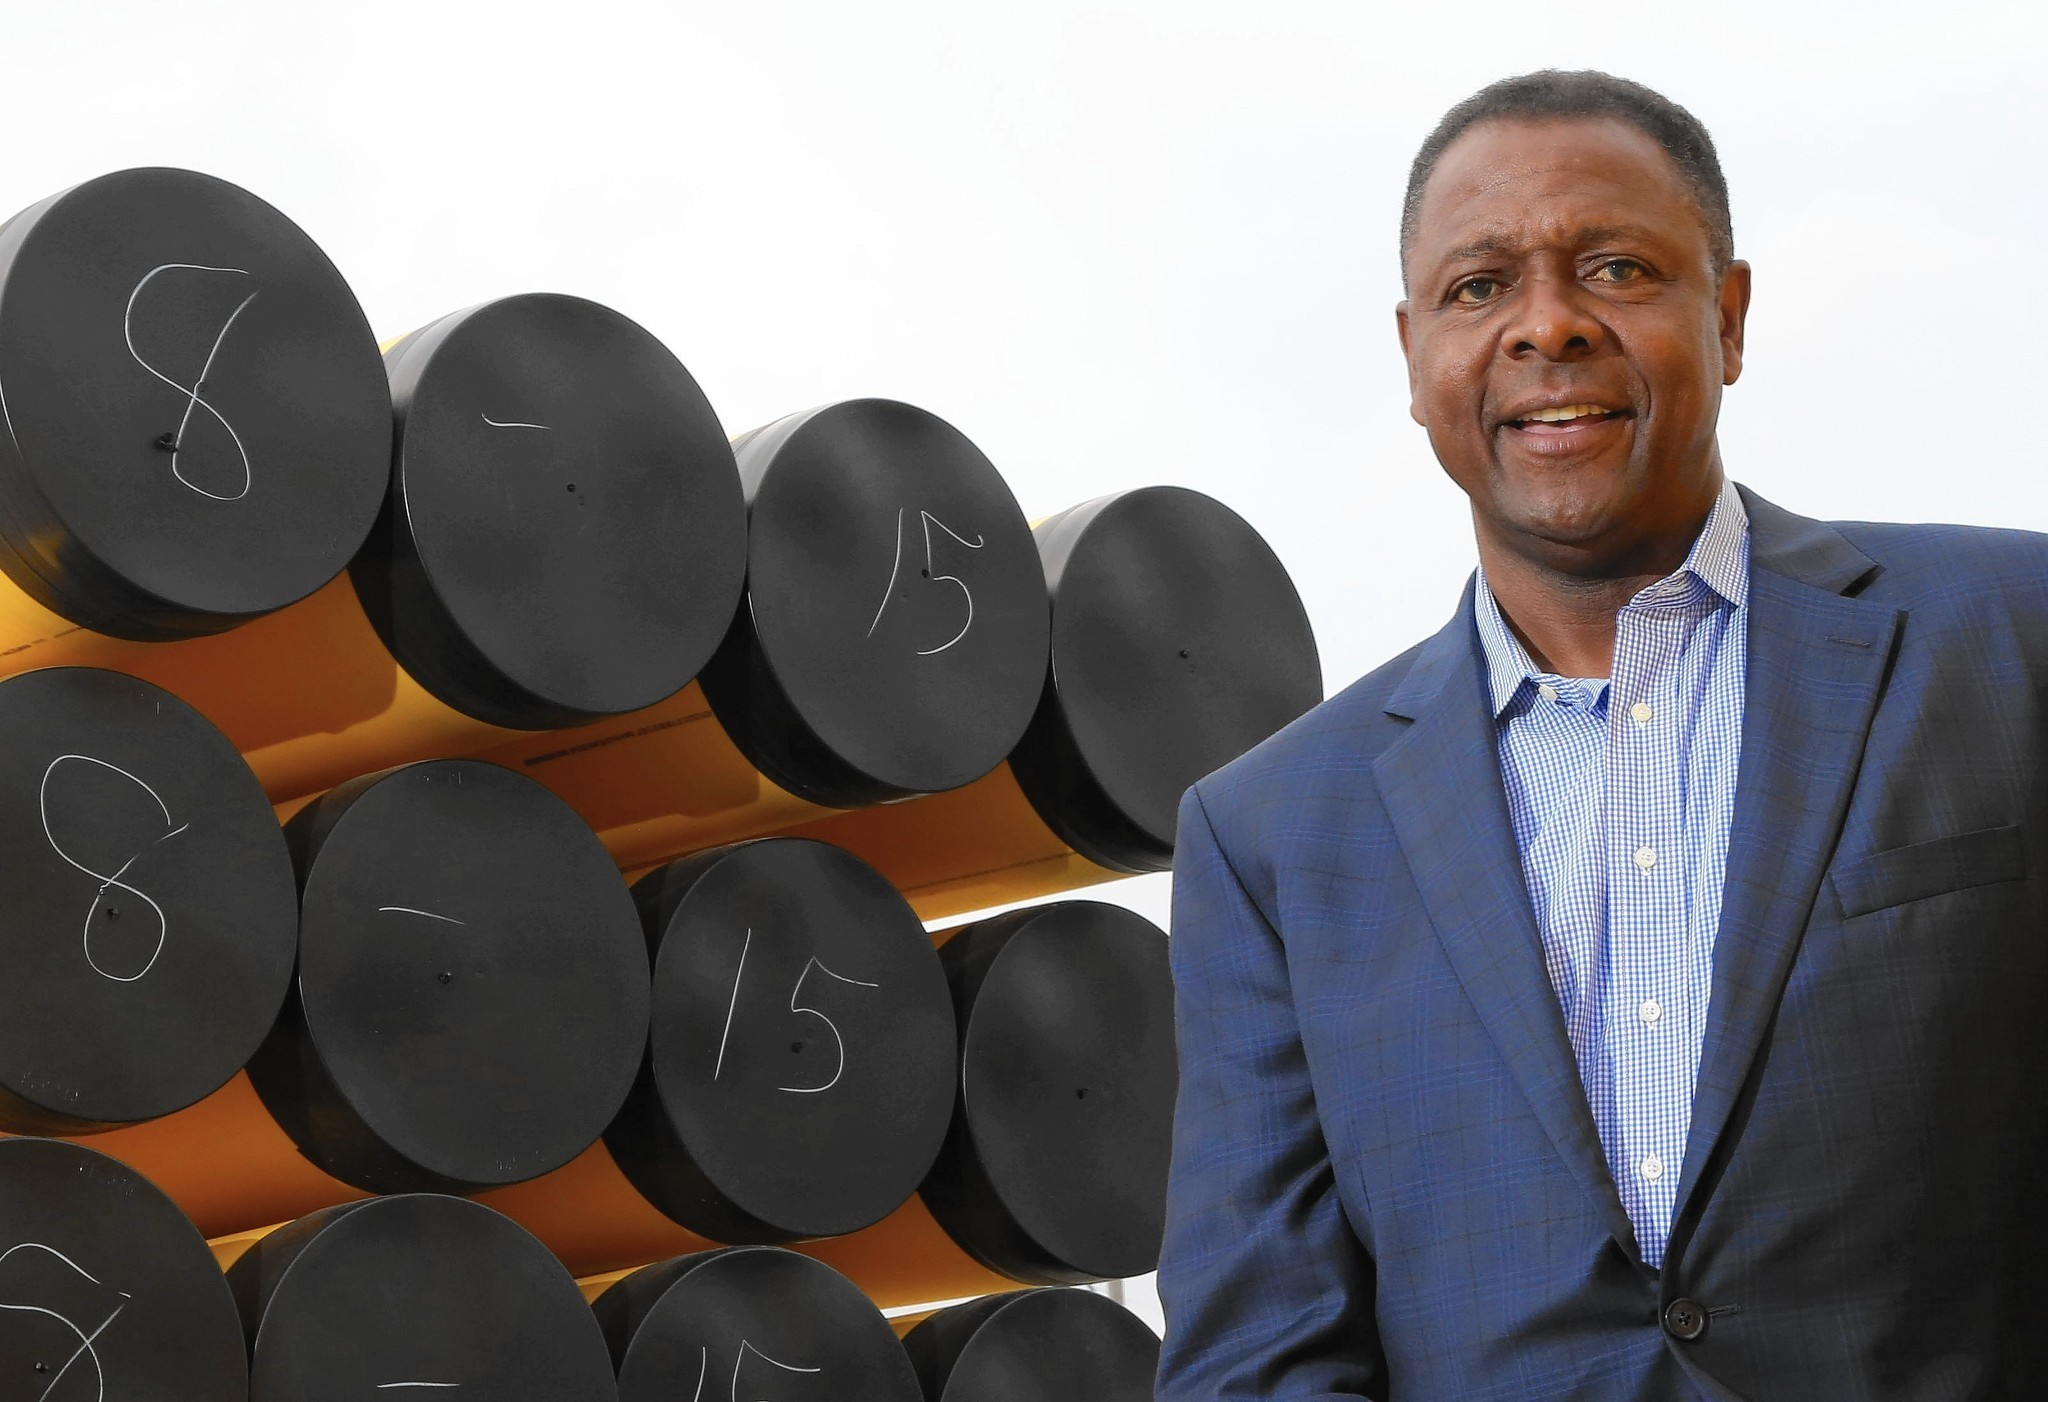 gas peoples charles matthews replacement program ceo pipe chicago brought arriving beleaguered since management company has house